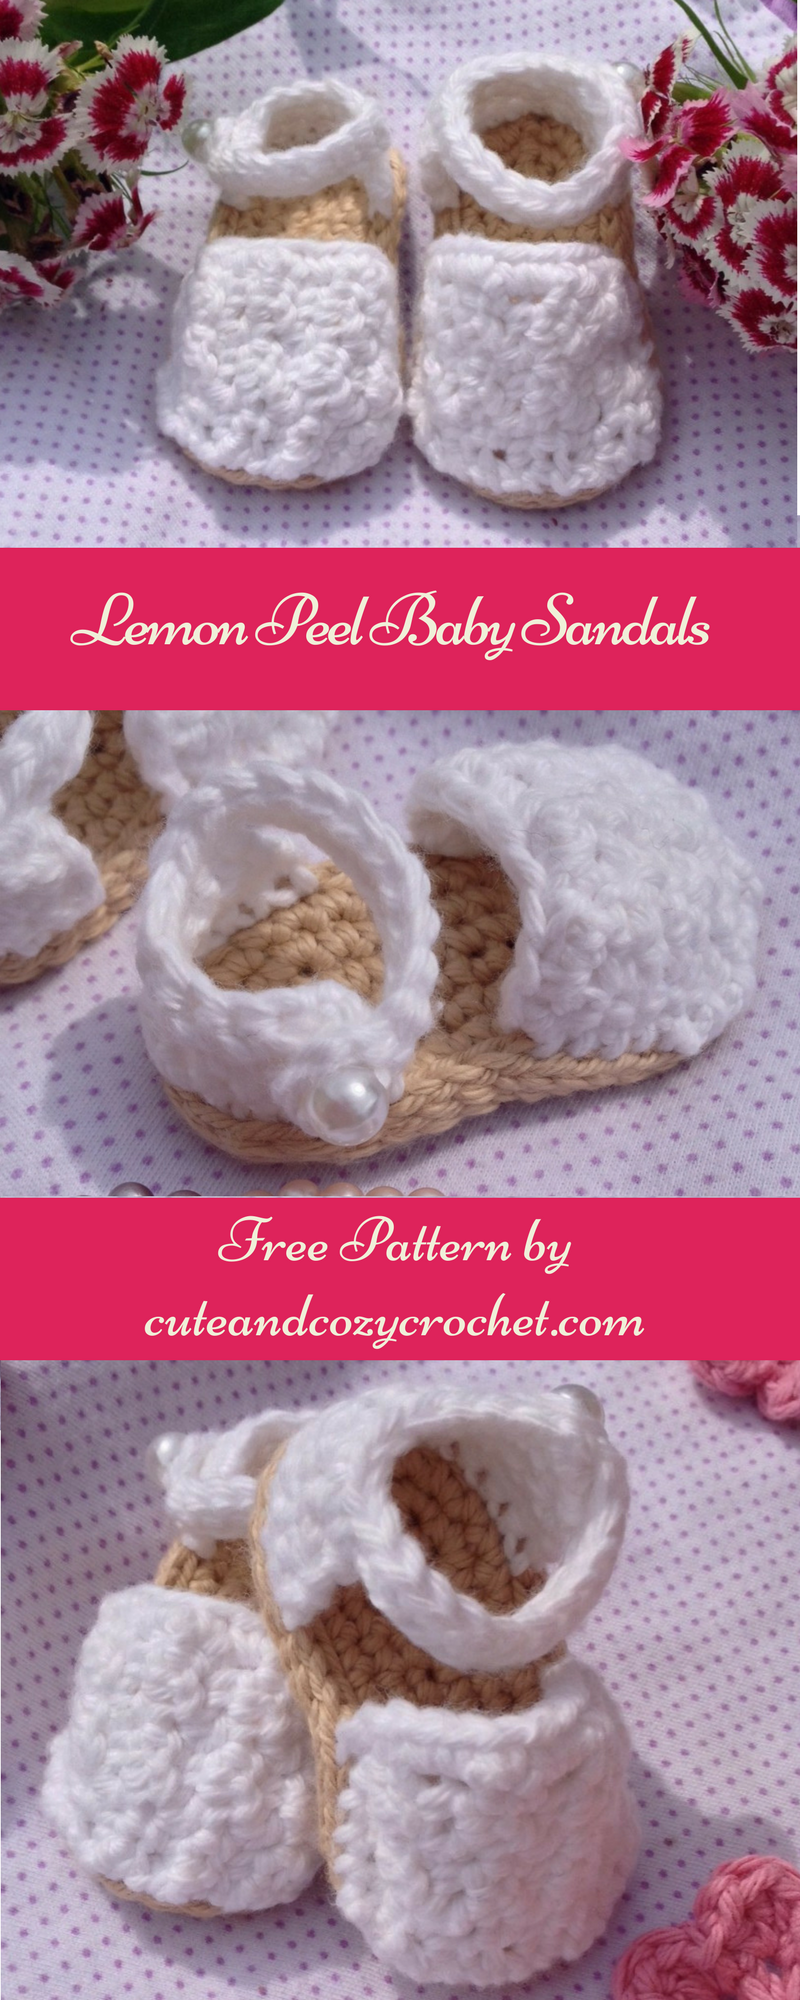 Lemon Peel Baby Sandals | Baby sandals, Crochet patterns baby and ...